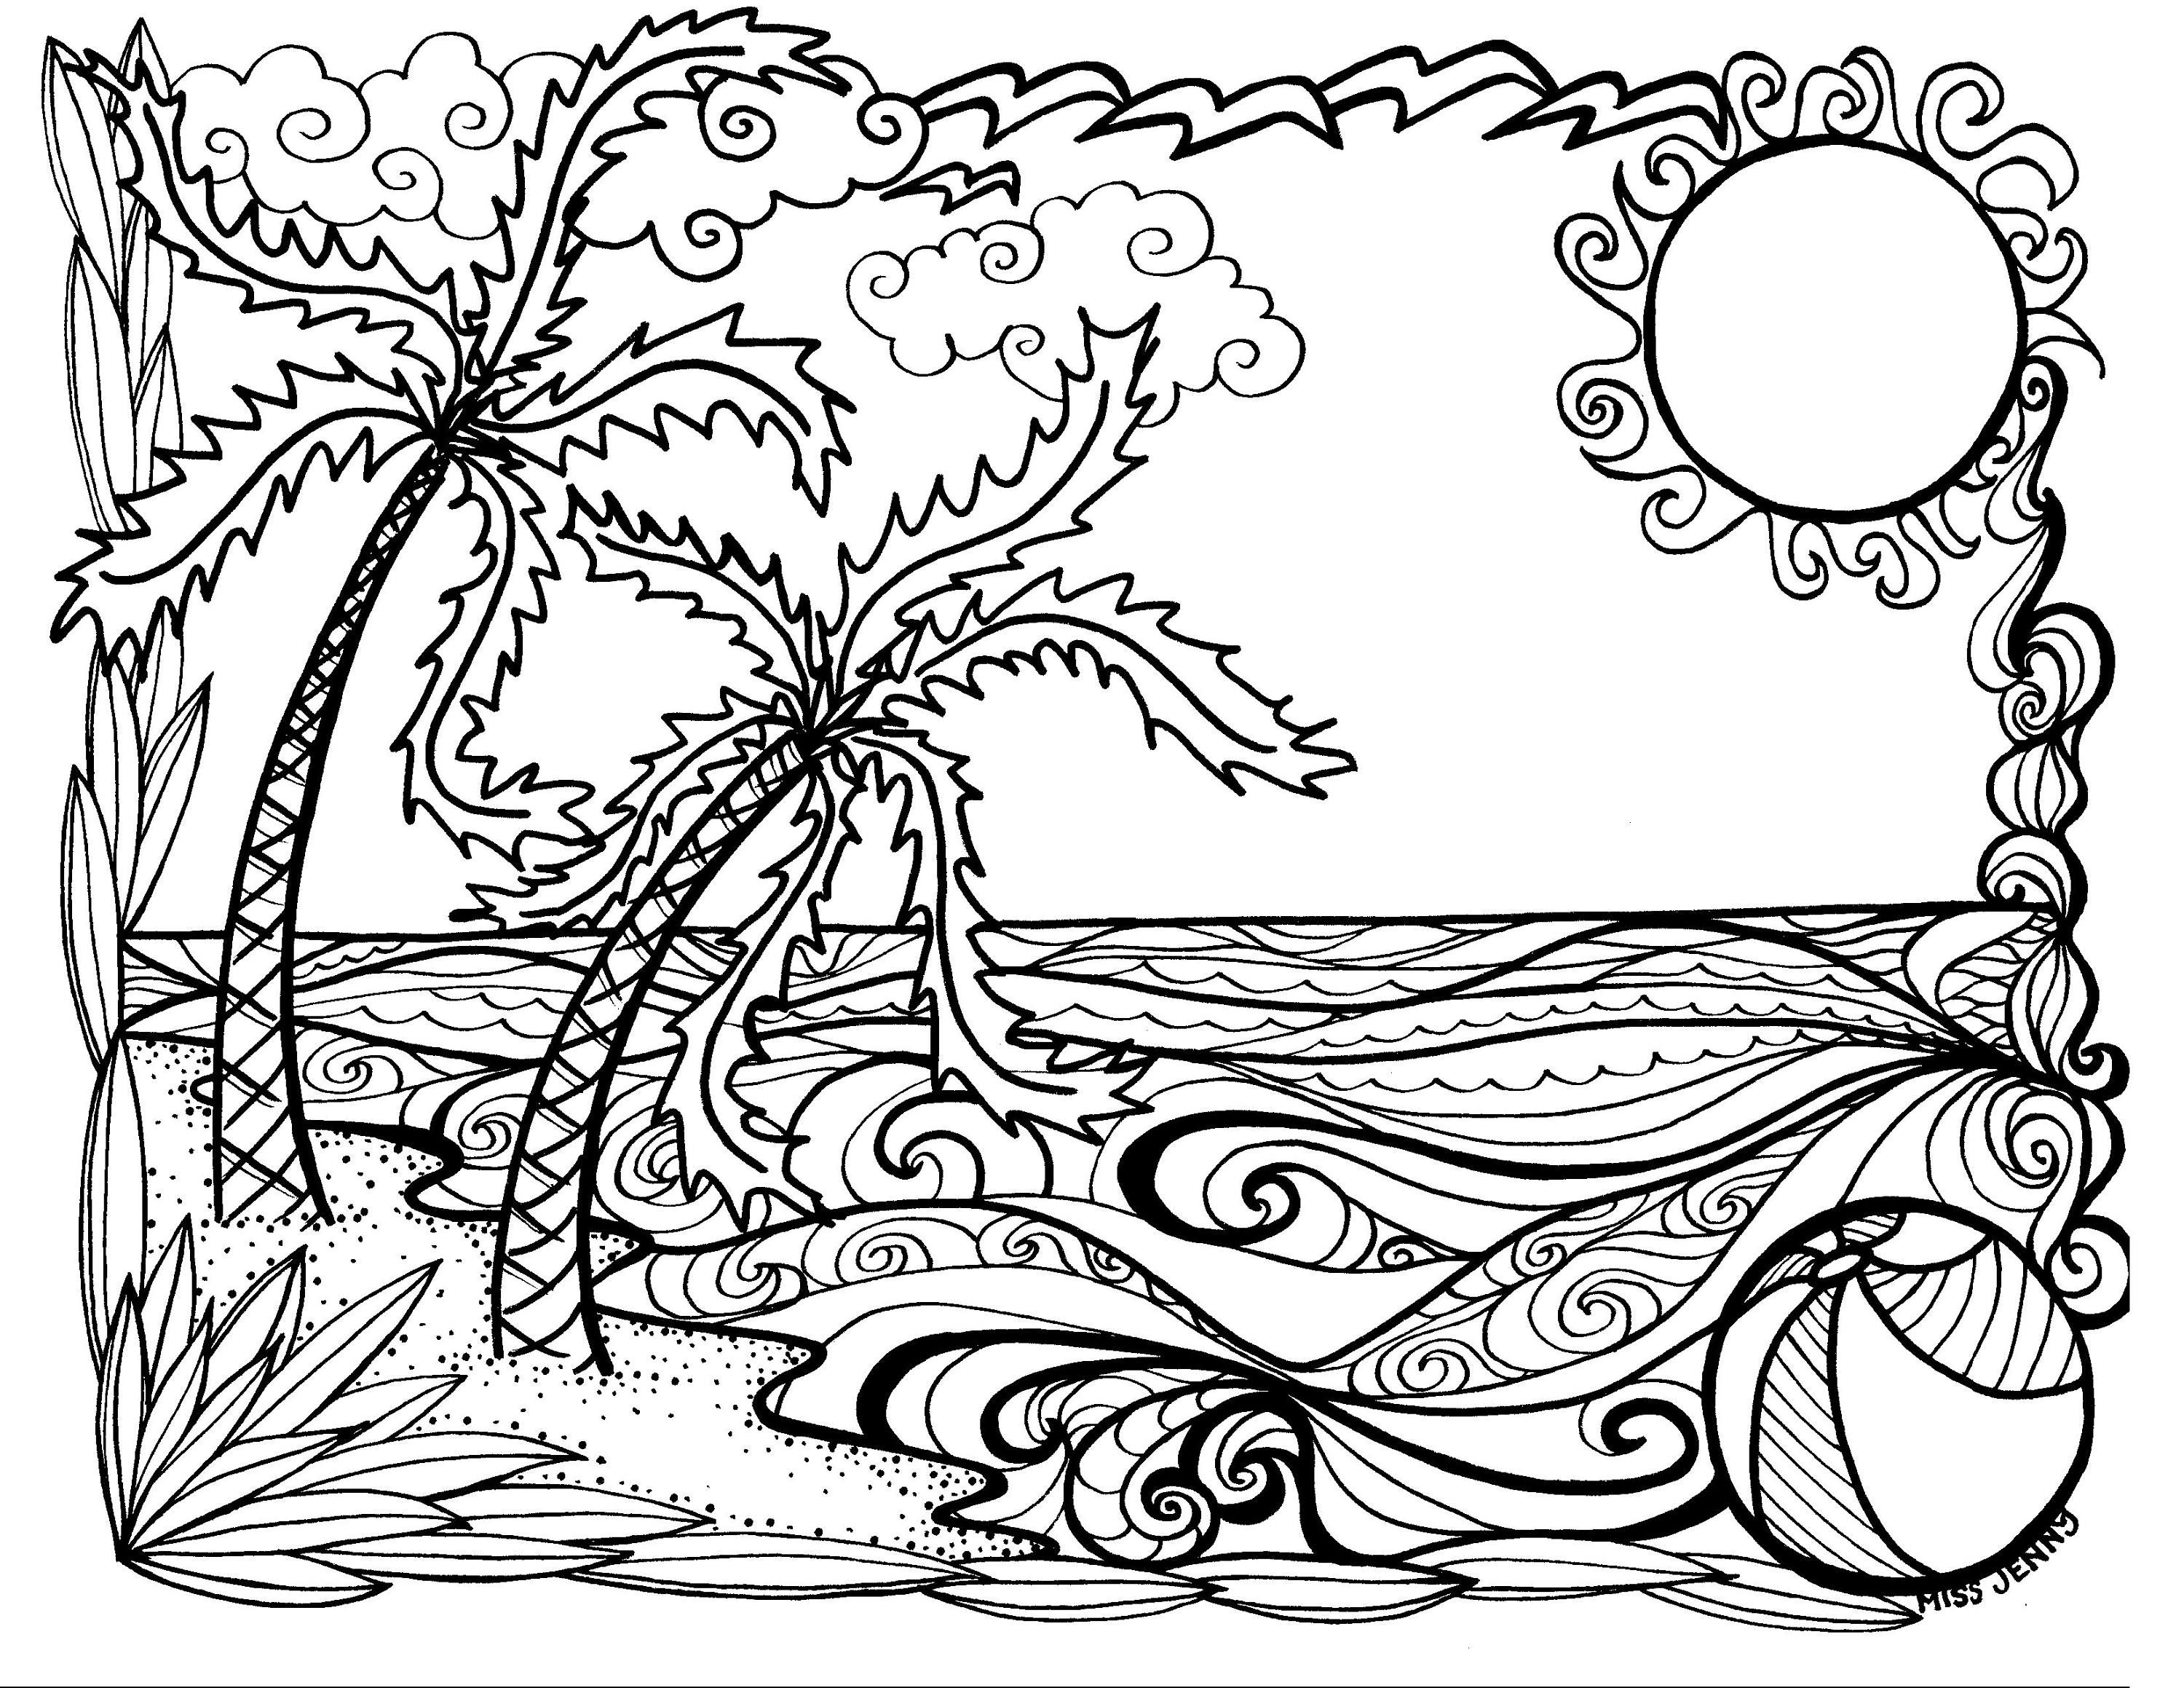 funny summer coloring pages summer coloring pages getcoloringpagescom summer funny pages coloring 1 1